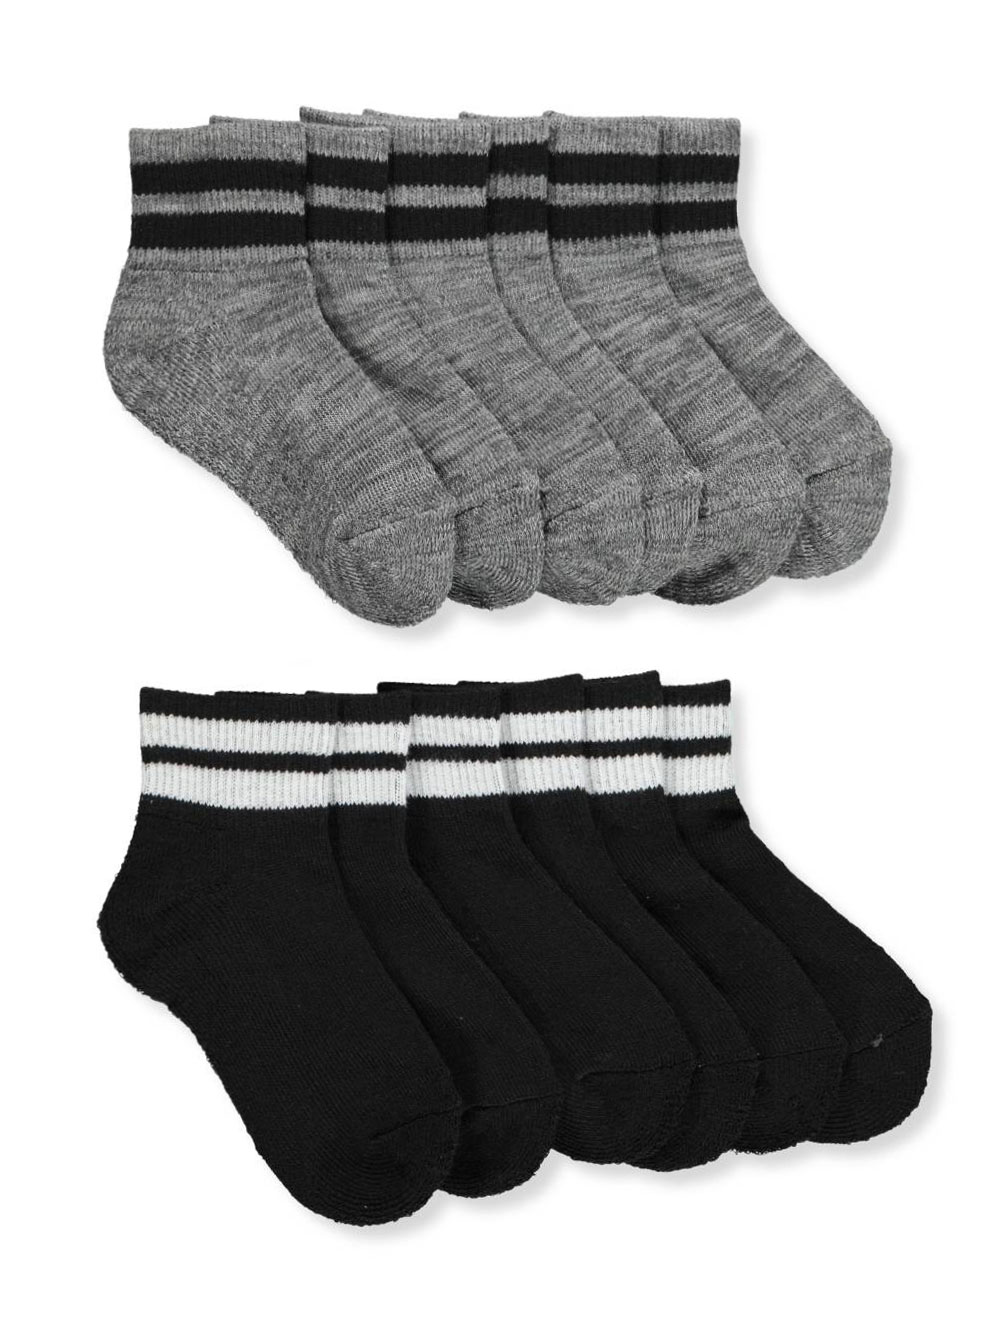 Baby Lounge Baby Boys' 6-Pack Crew Socks